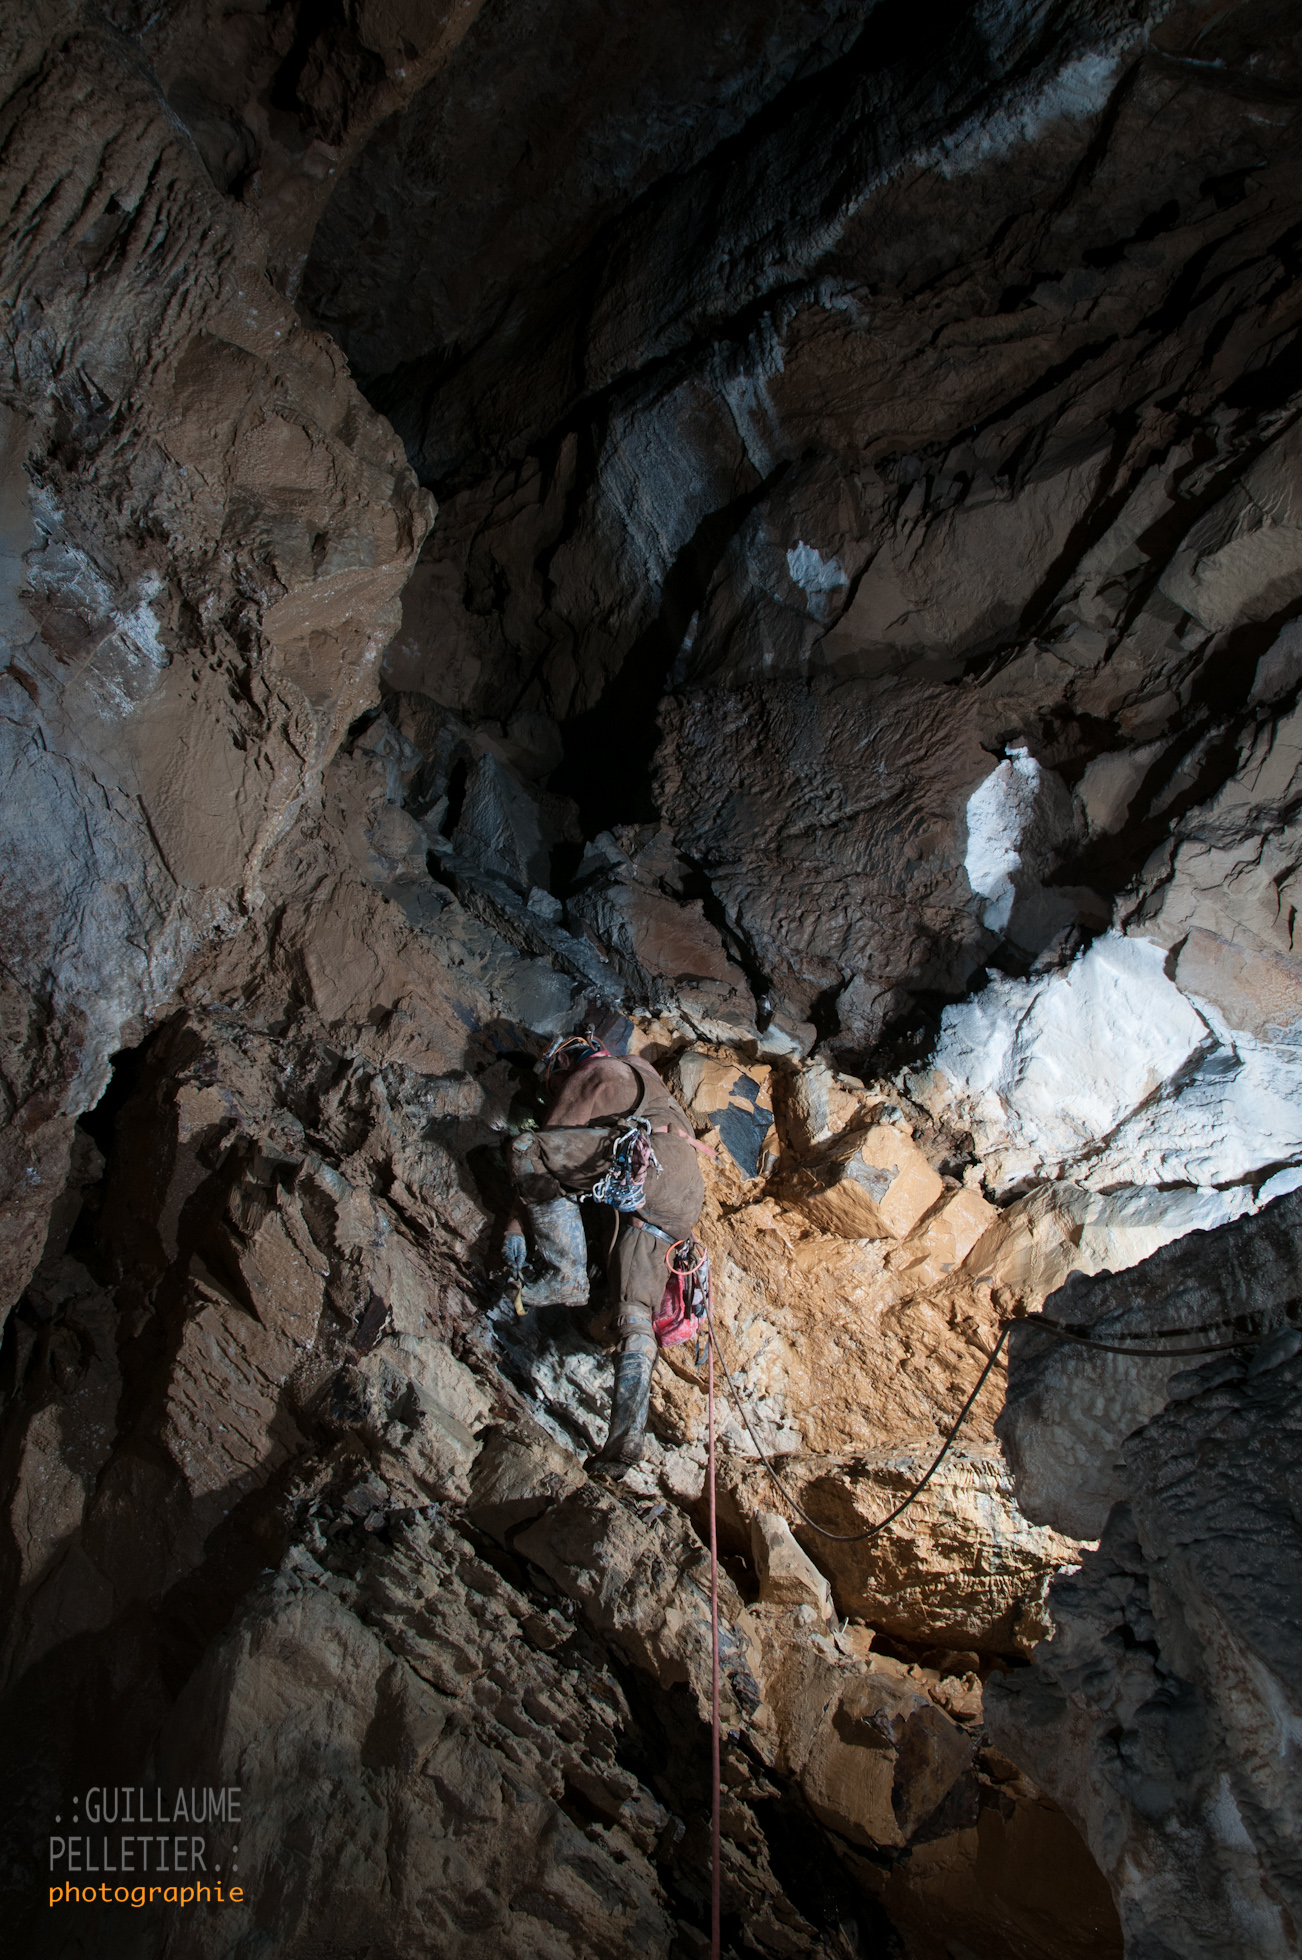 Rob bolt climbing in El Chupadero. Photo Guillaume Pelletier